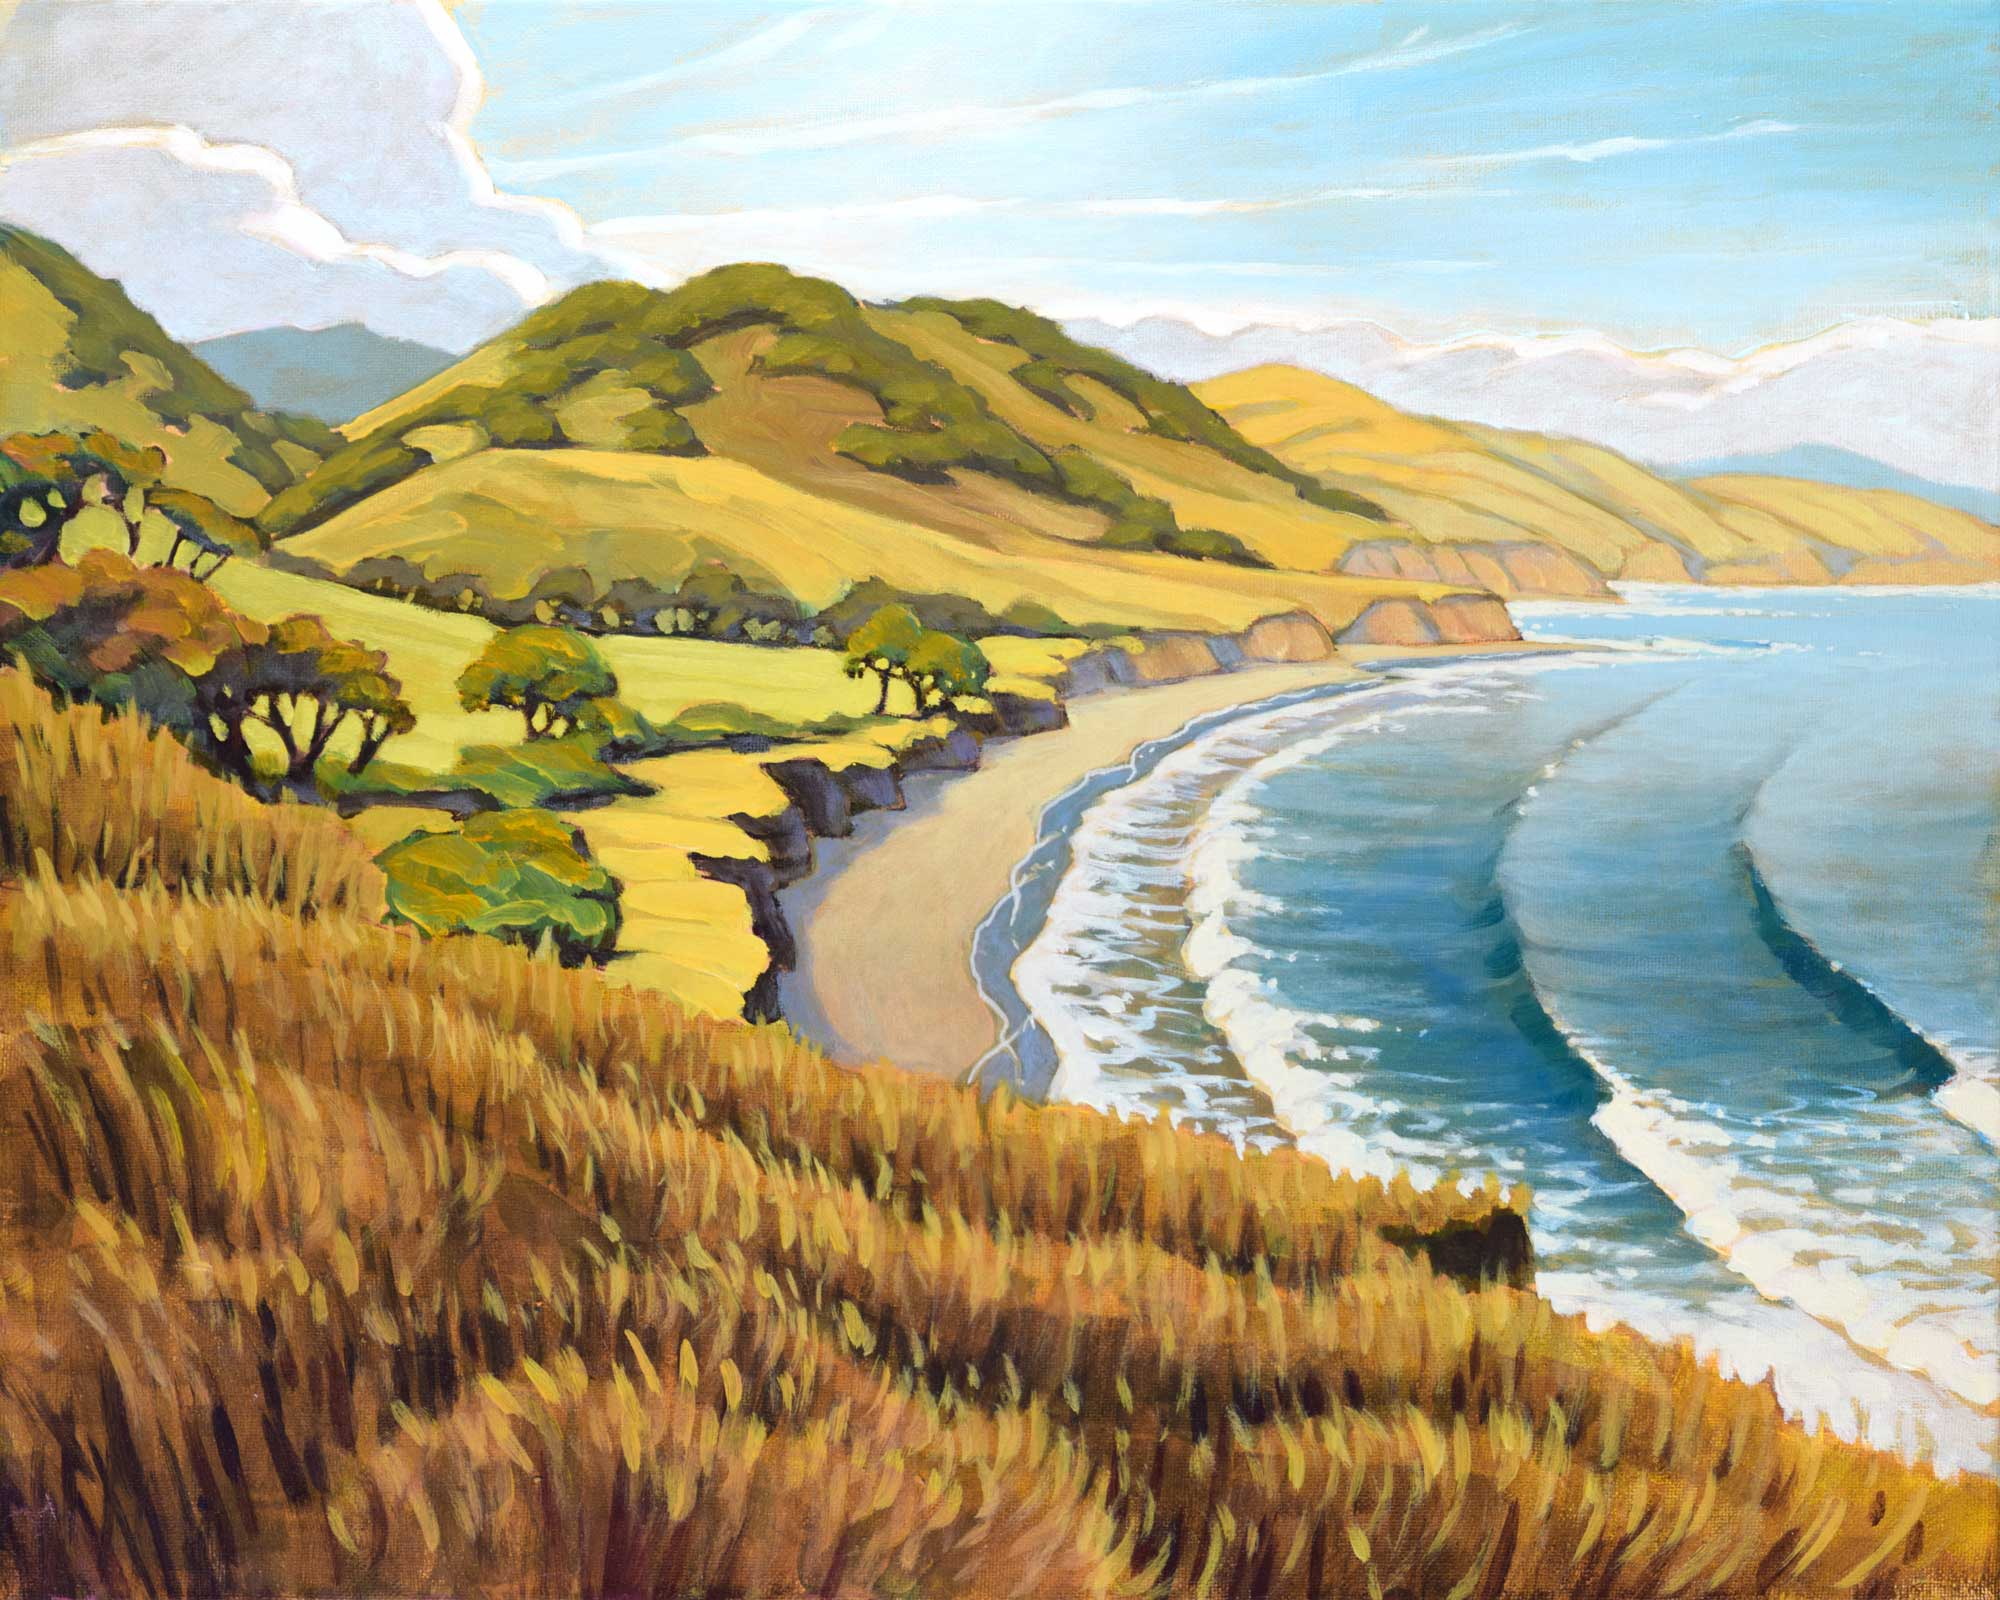 Plein air artwork from the bluff over Bolito Poin on Hollister Ranch on the Santa Barbara coast of California